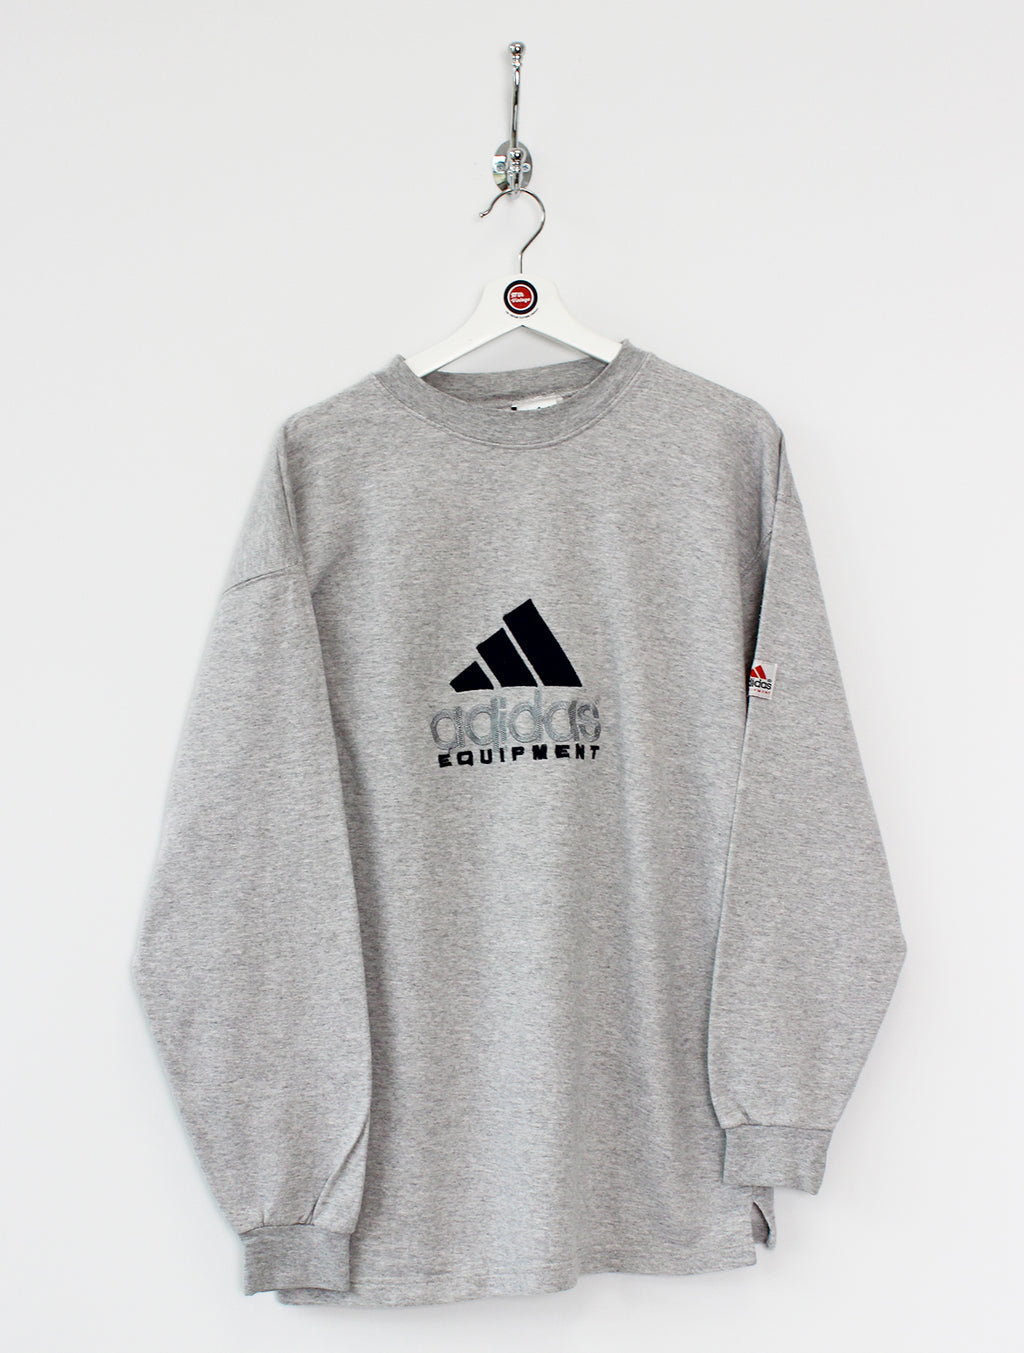 Adidas Equipment Sweatshirt (M)